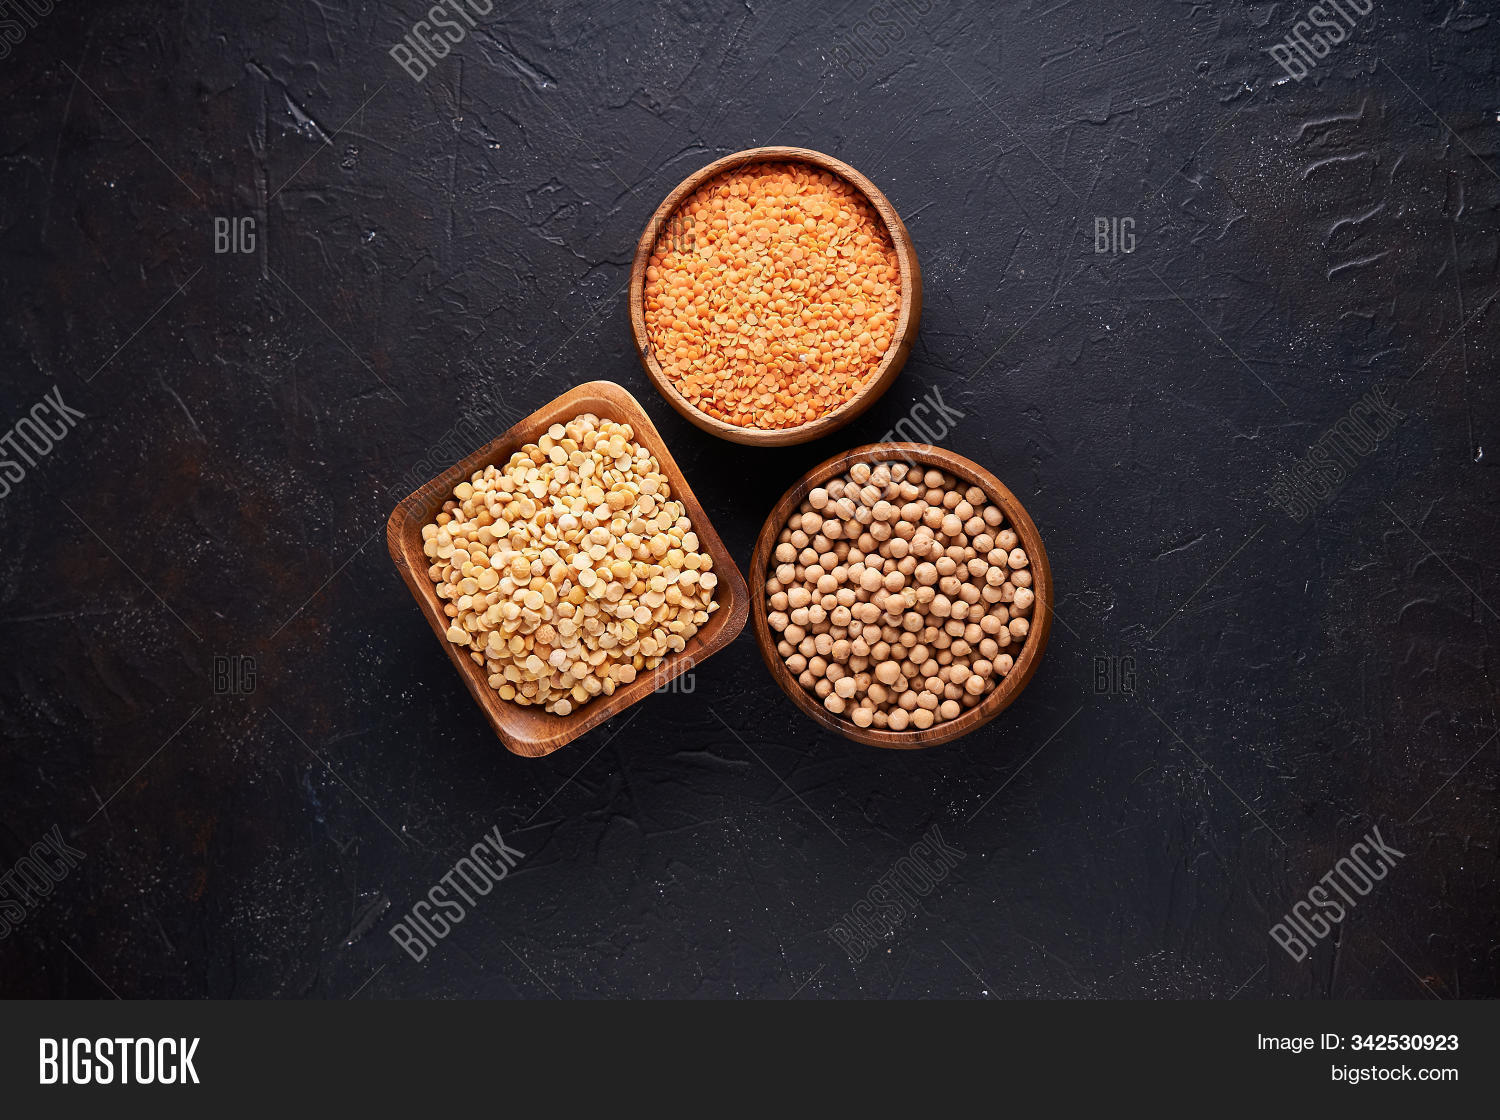 agriculture,assortment,background,beans,bowl,carbohydrates,cereals,chickpeas,cook,cooking,copy,dark,detox,diet,eat,food,grains,healthy,homemade,ingredients,legumes,lentils,market,menu,natural,nutrition,organic,peas,plate,set,space,tasty,traditional,vegan,vegetarian,vertical,wooden